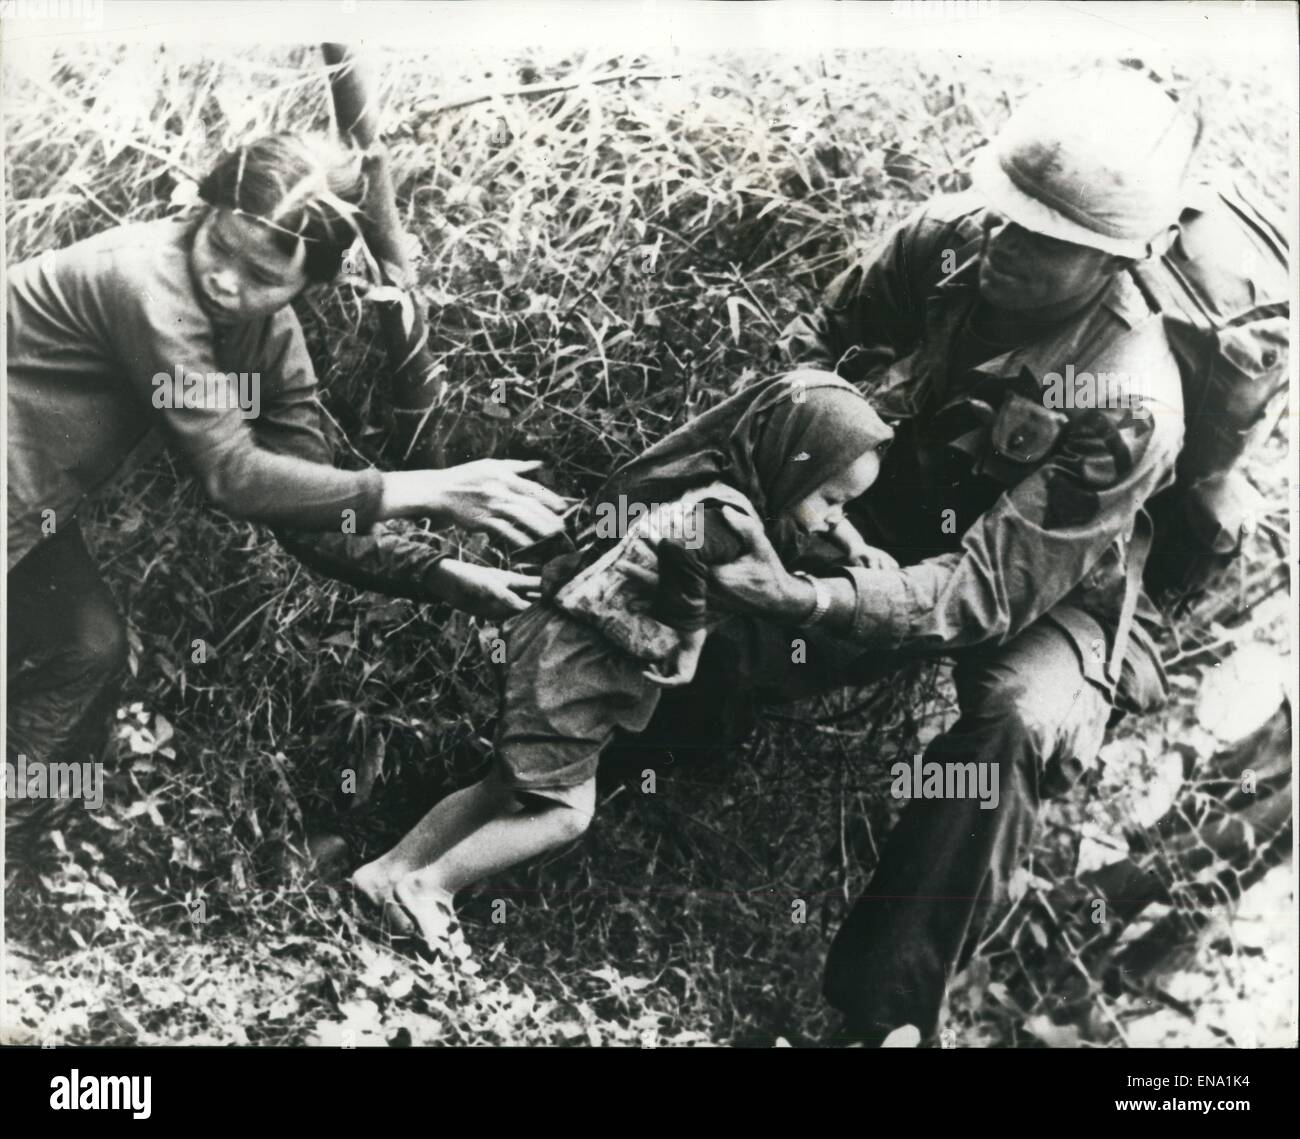 File. 30th Apr, 2015. The Vietnam War, also known as the Second Indochina War, and also known in Vietnam as Resistance Stock Photo